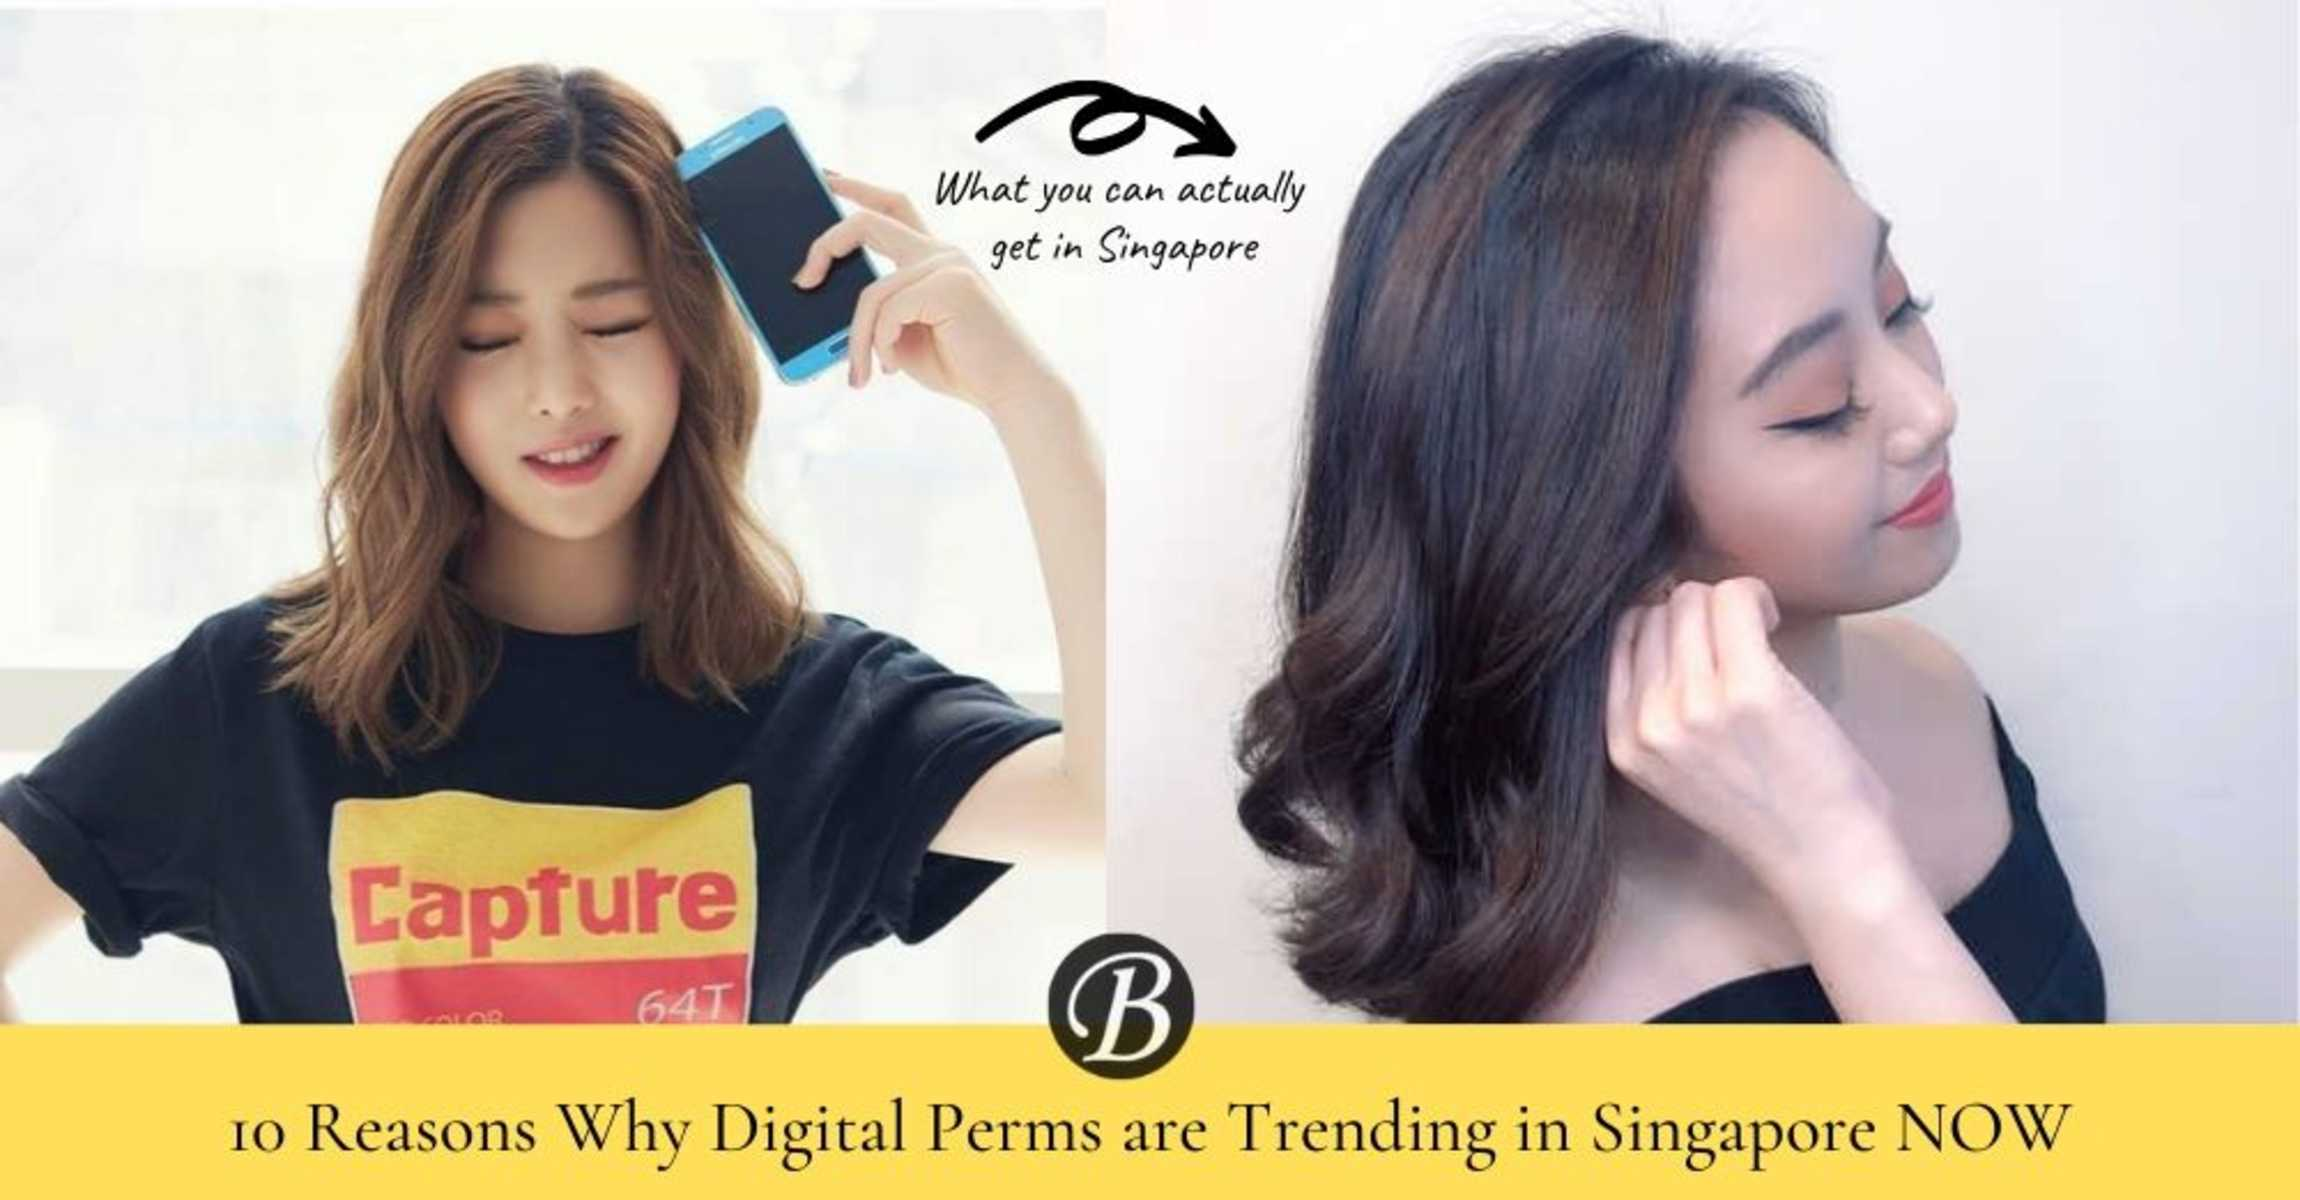 10 Reasons Why Digital Perm is Trending Among Young Women in Singapore